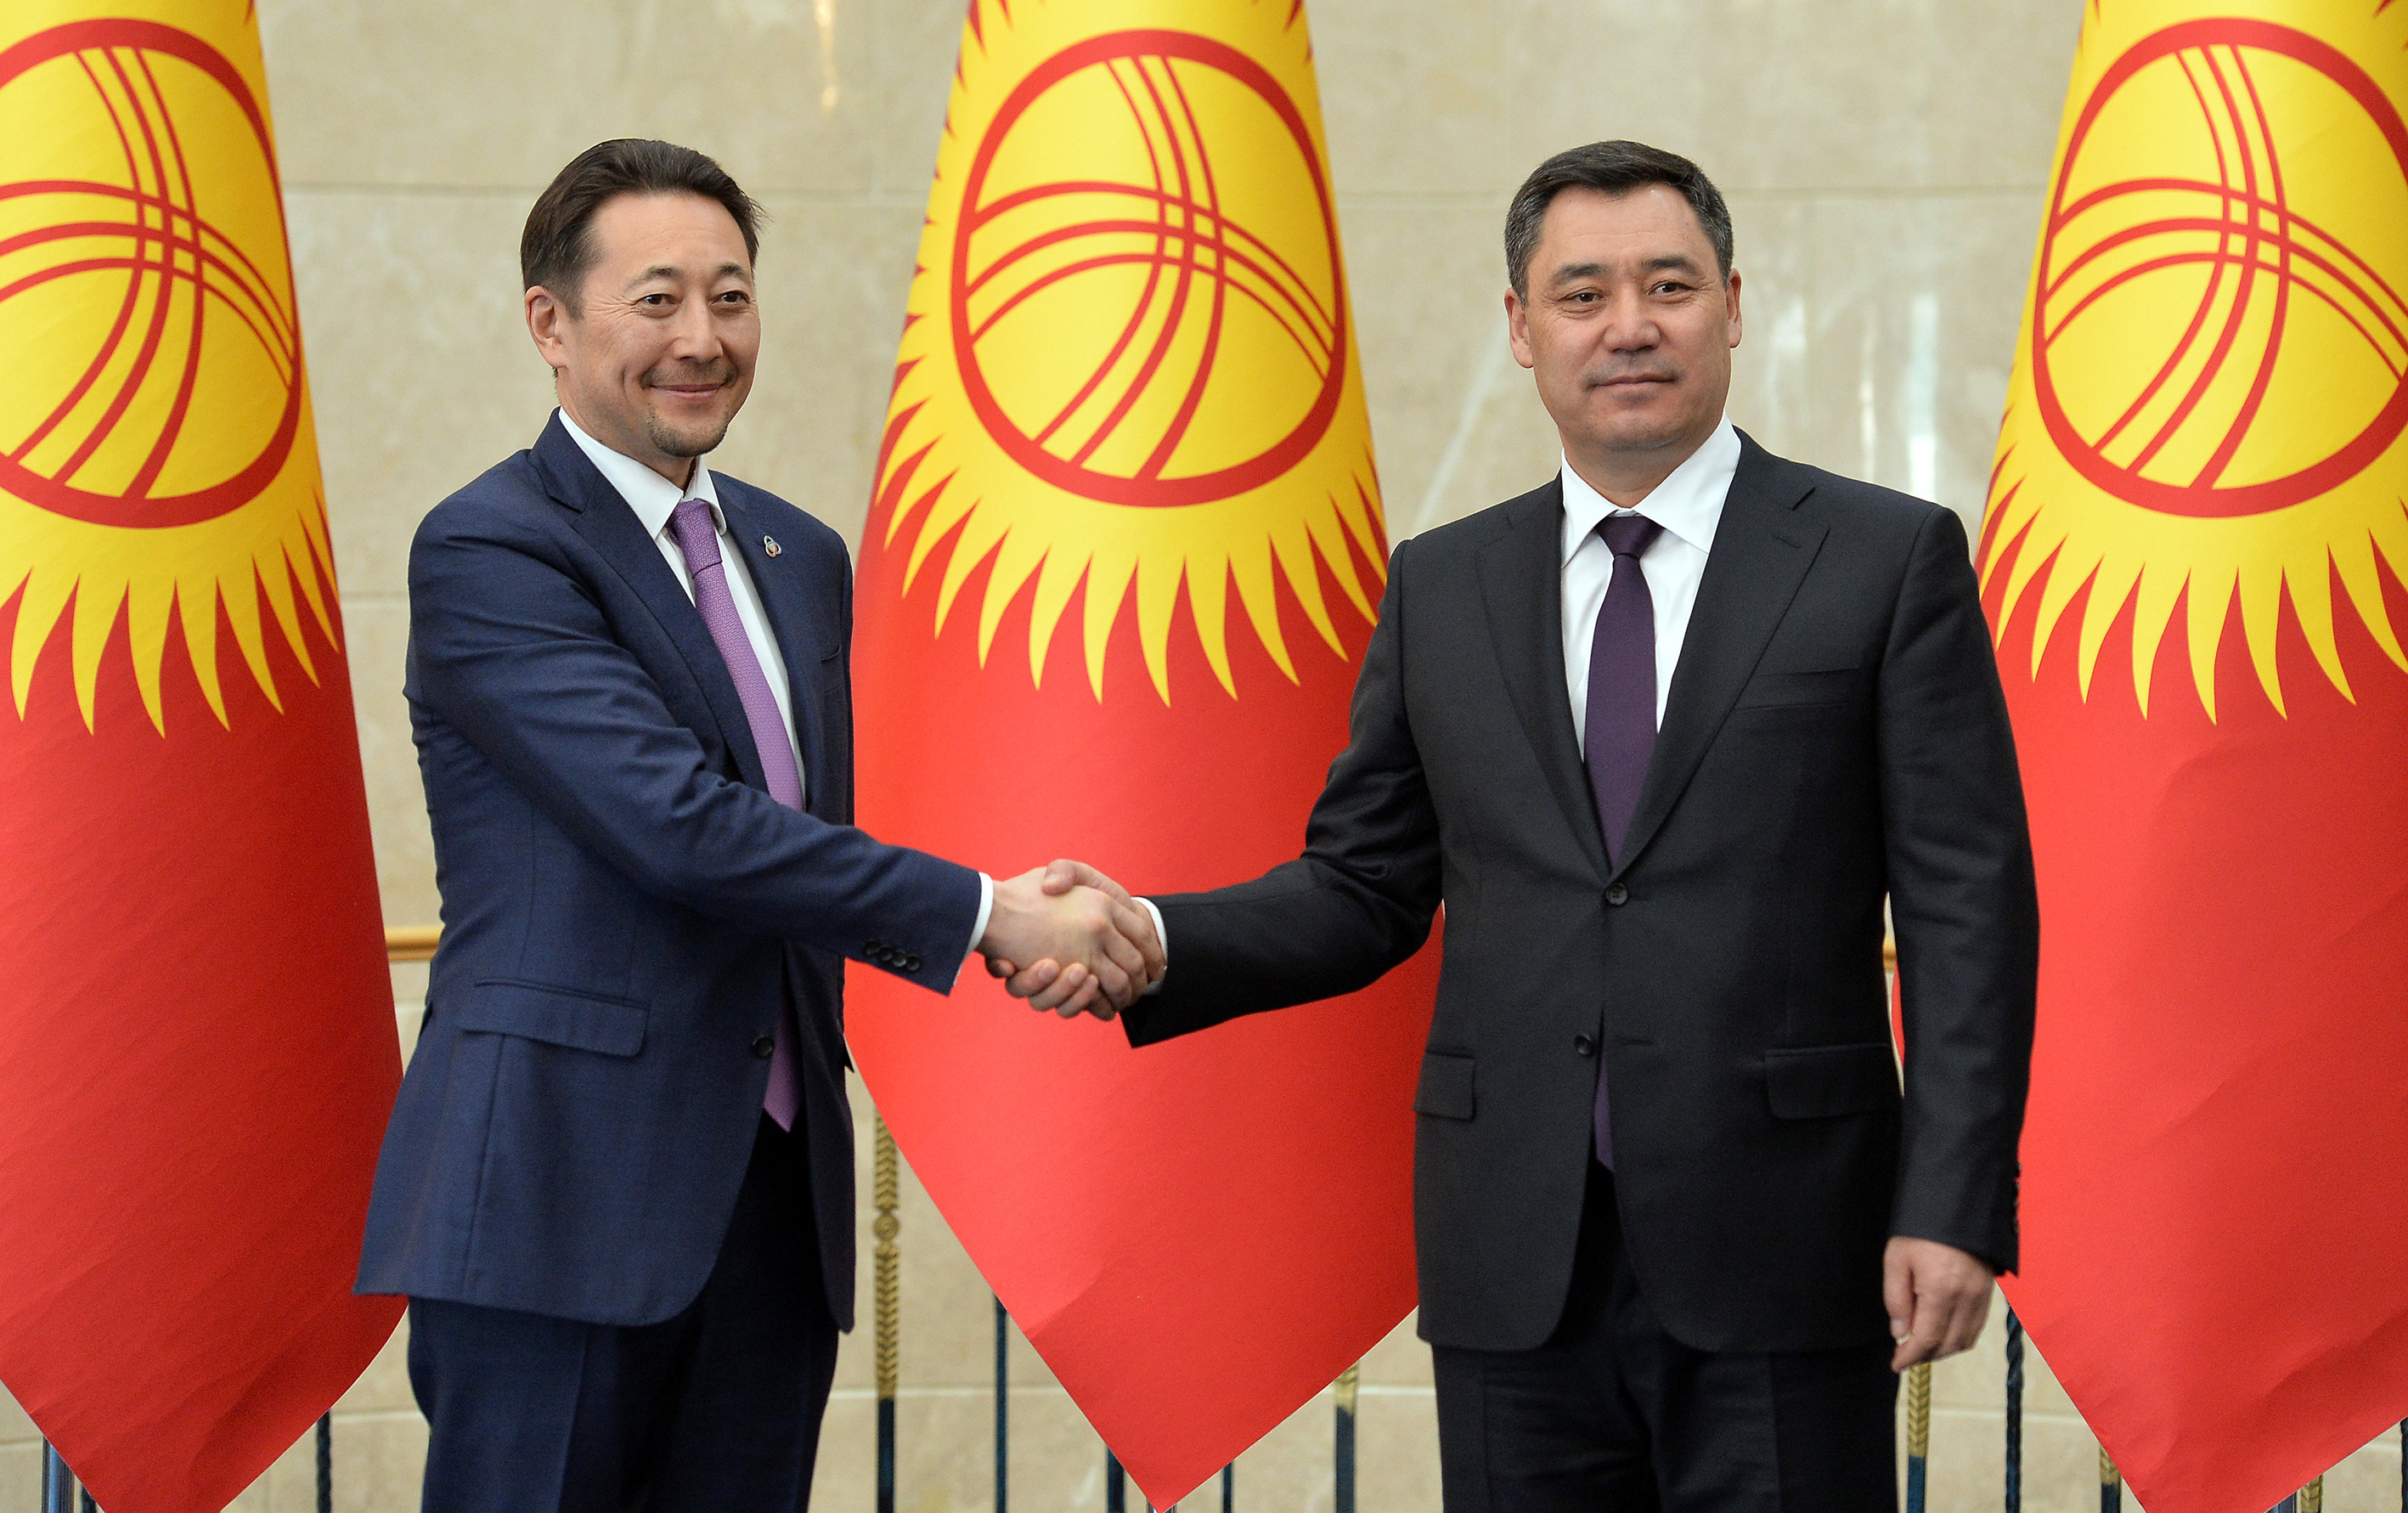 Kyrgyzstan is committed to the goals and objectives of the CICA in line with the principles of its multi-vector and pragmatic foreign policy                          H.E. President of Kyrgyz Republic Mr. Sadyr Zhaparov stated during the meeting with representatives of international organizations in Bishkek.